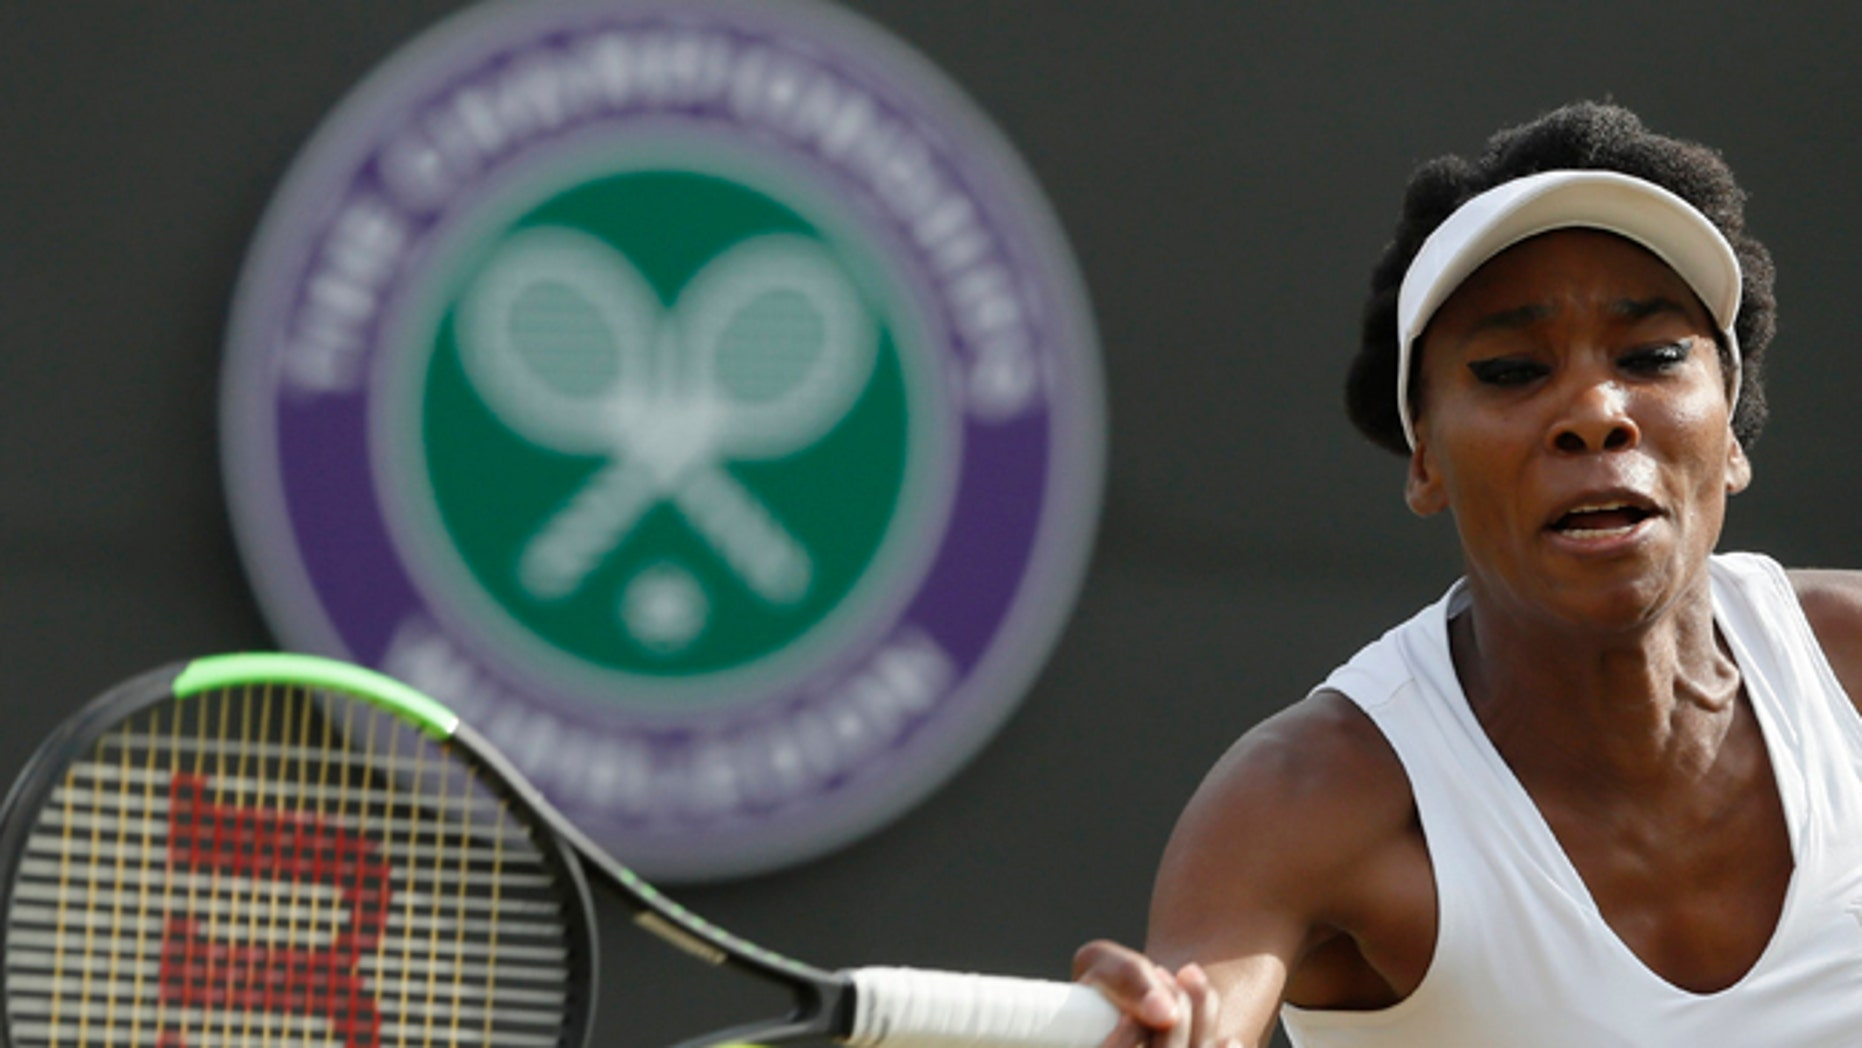 Venus Williams of the United States returns to Japan's Naomi Osaka during their Women's Singles Match on day five at the Wimbledon Tennis Championships in London Friday, July 7, 2017. (AP Photo/Kirsty Wigglesworth)